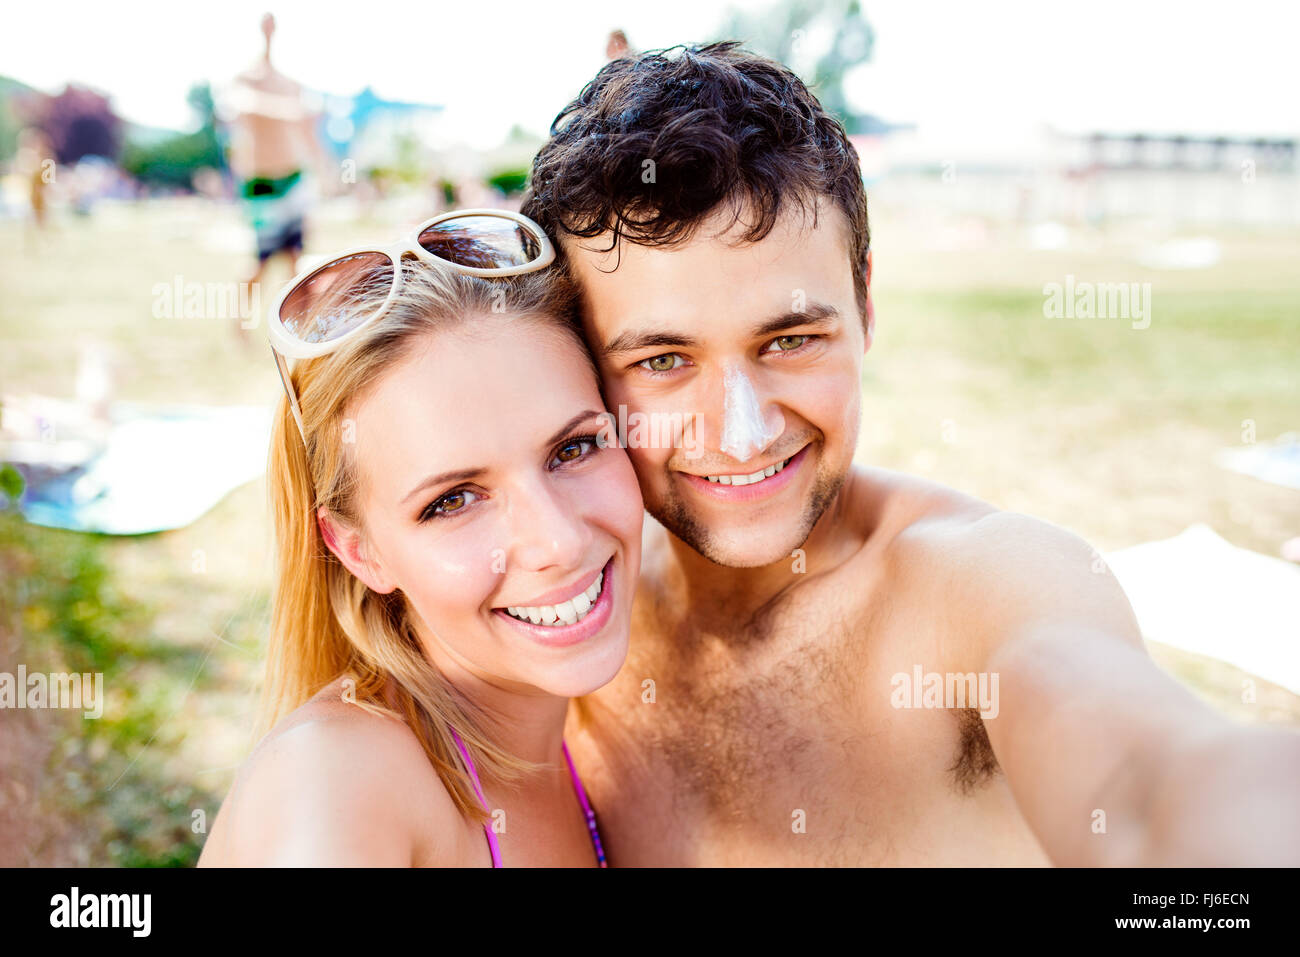 Young couple sunbathing, taking selfie. Sunscreen on the nose. - Stock Image